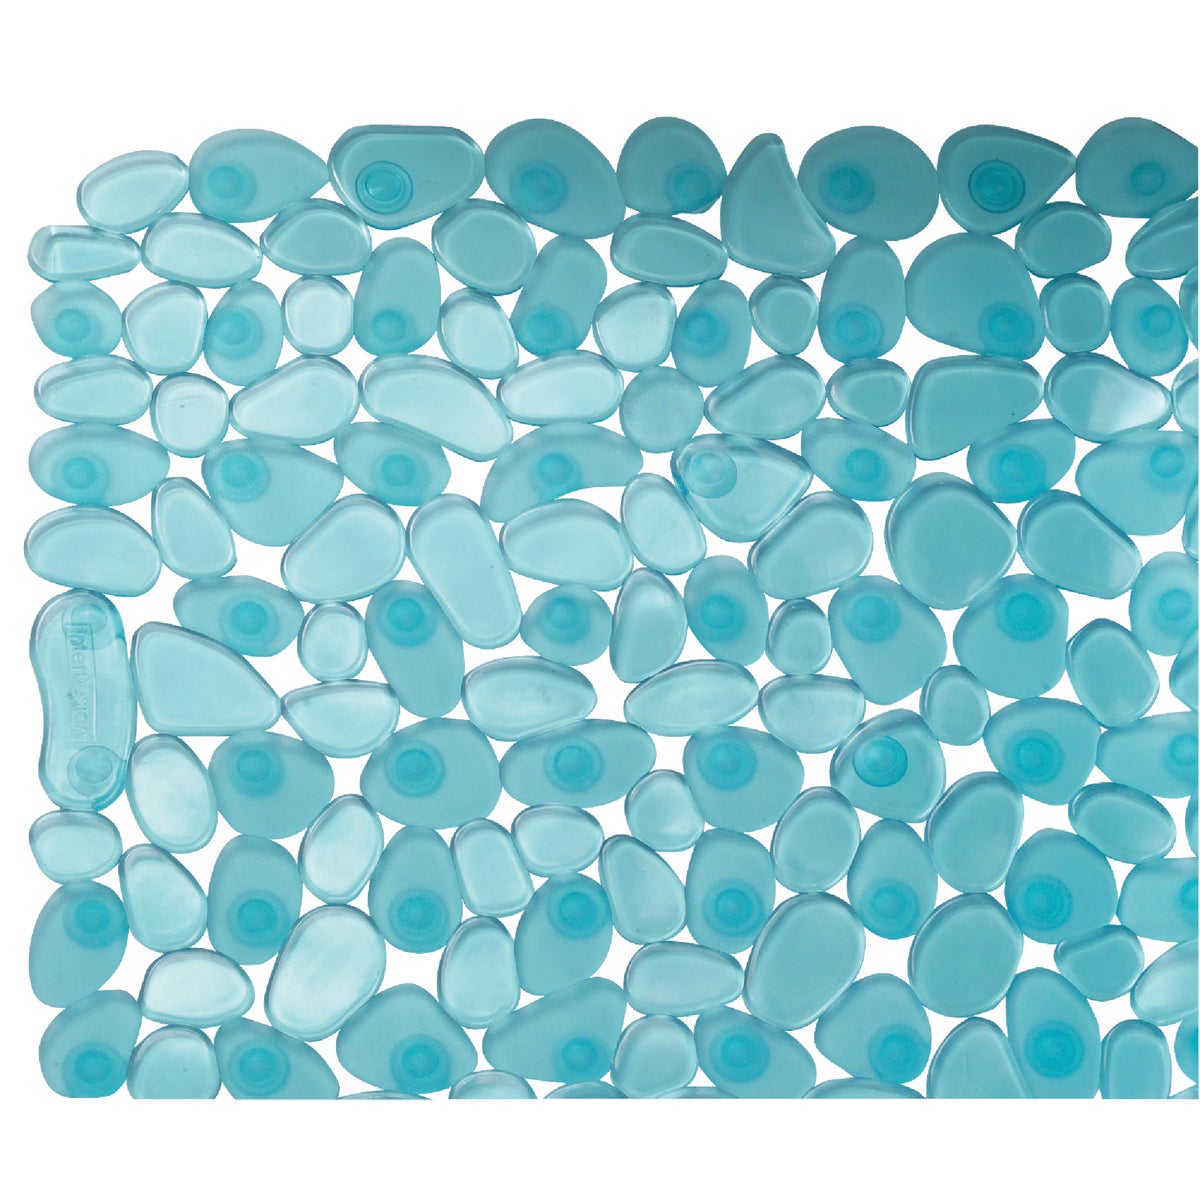 BLUE PEBBLZ BATH MAT - 80011 by Interdesign Inc